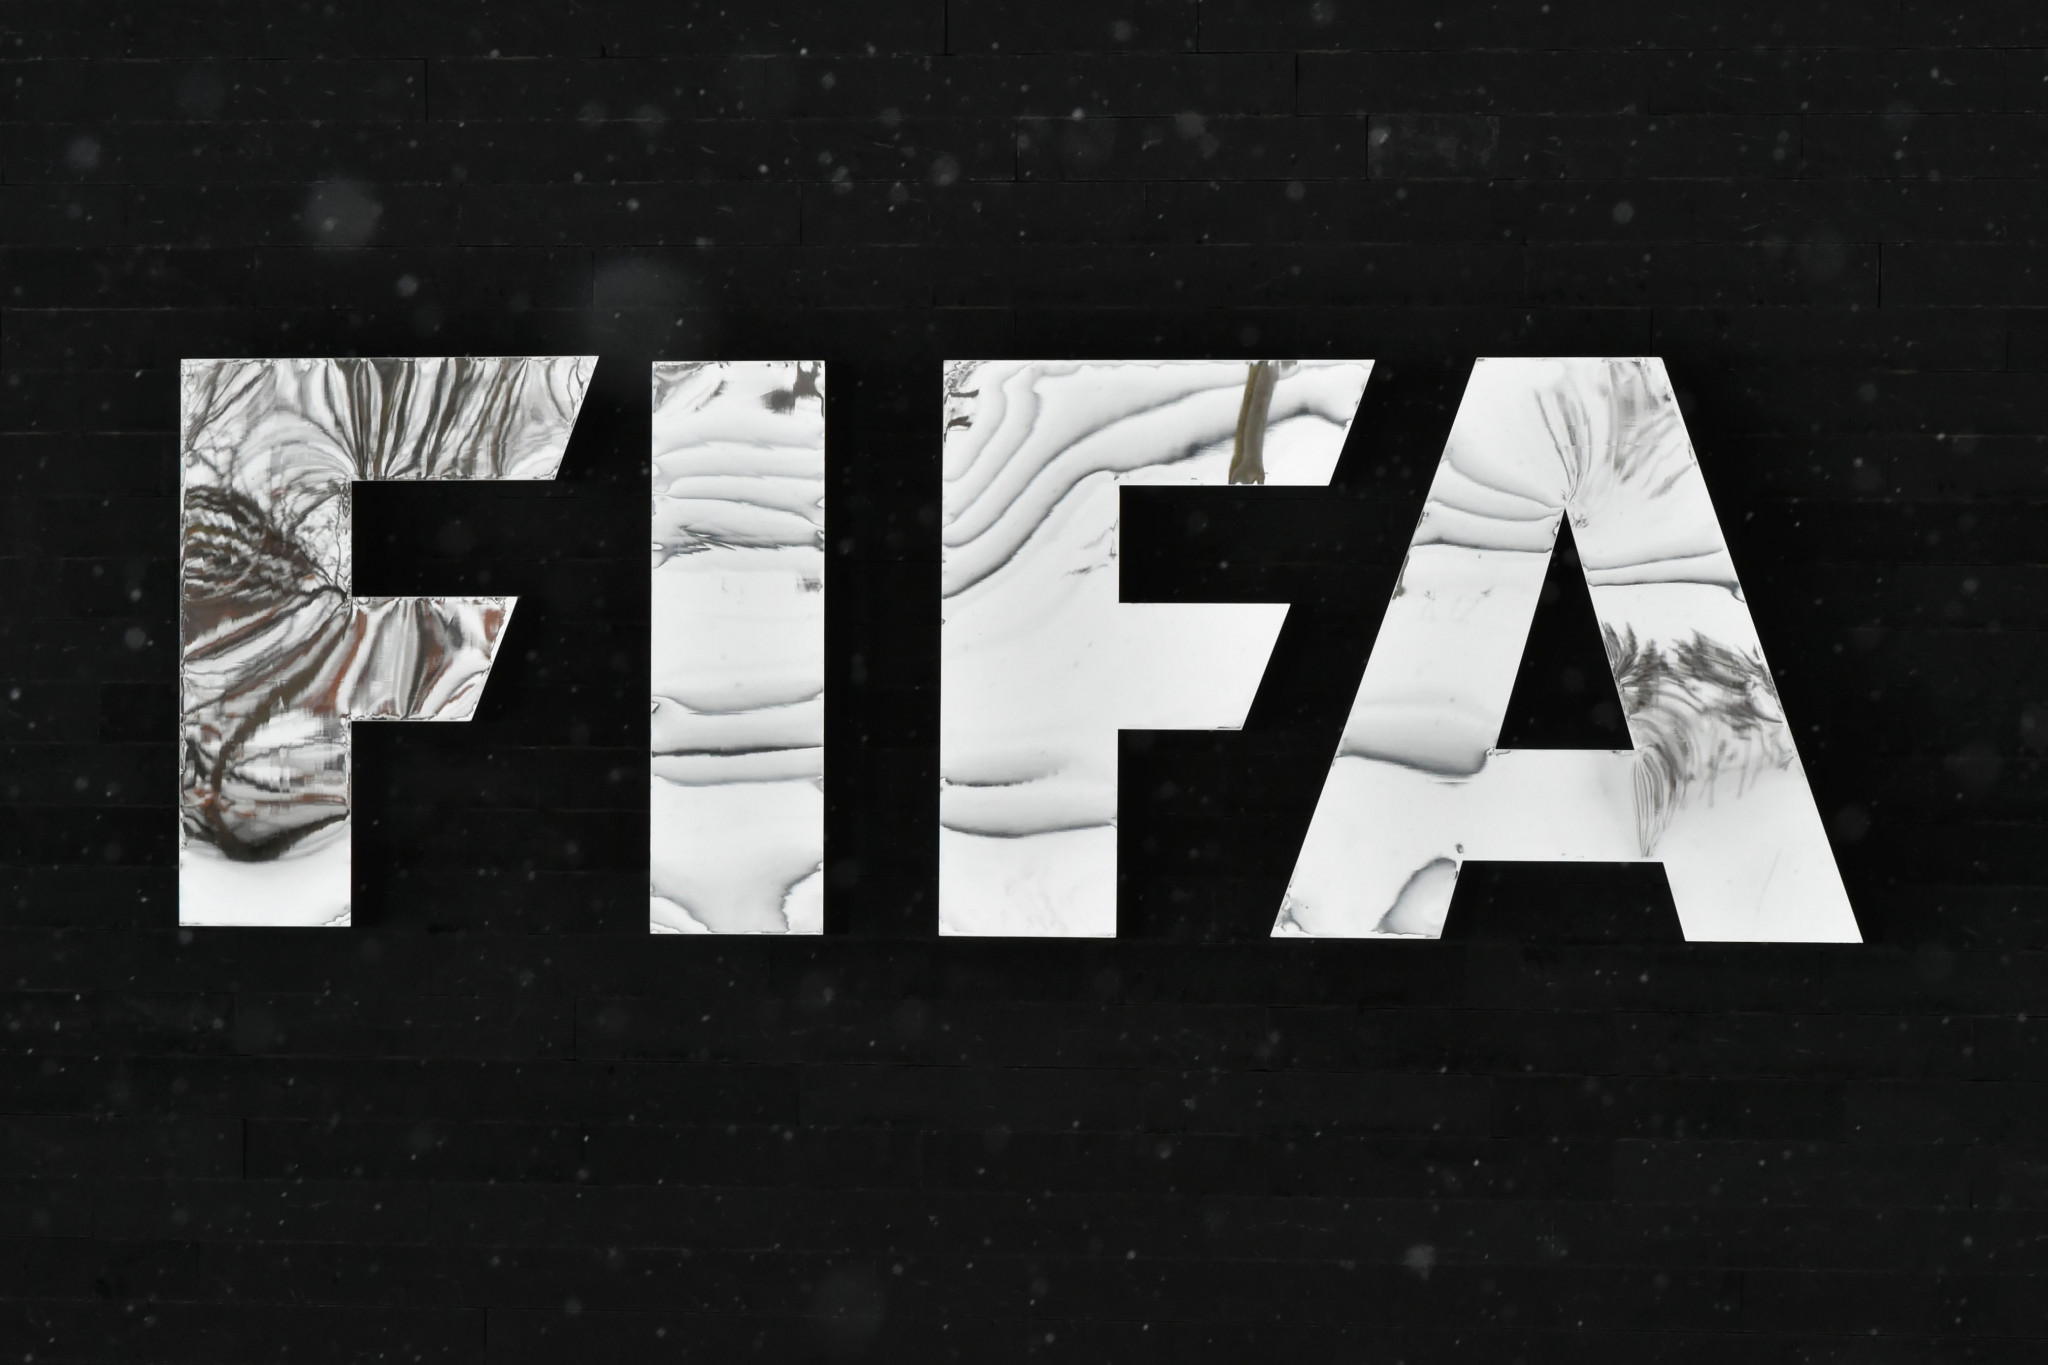 FIFA bans three officials implicated in corruption scandal for life